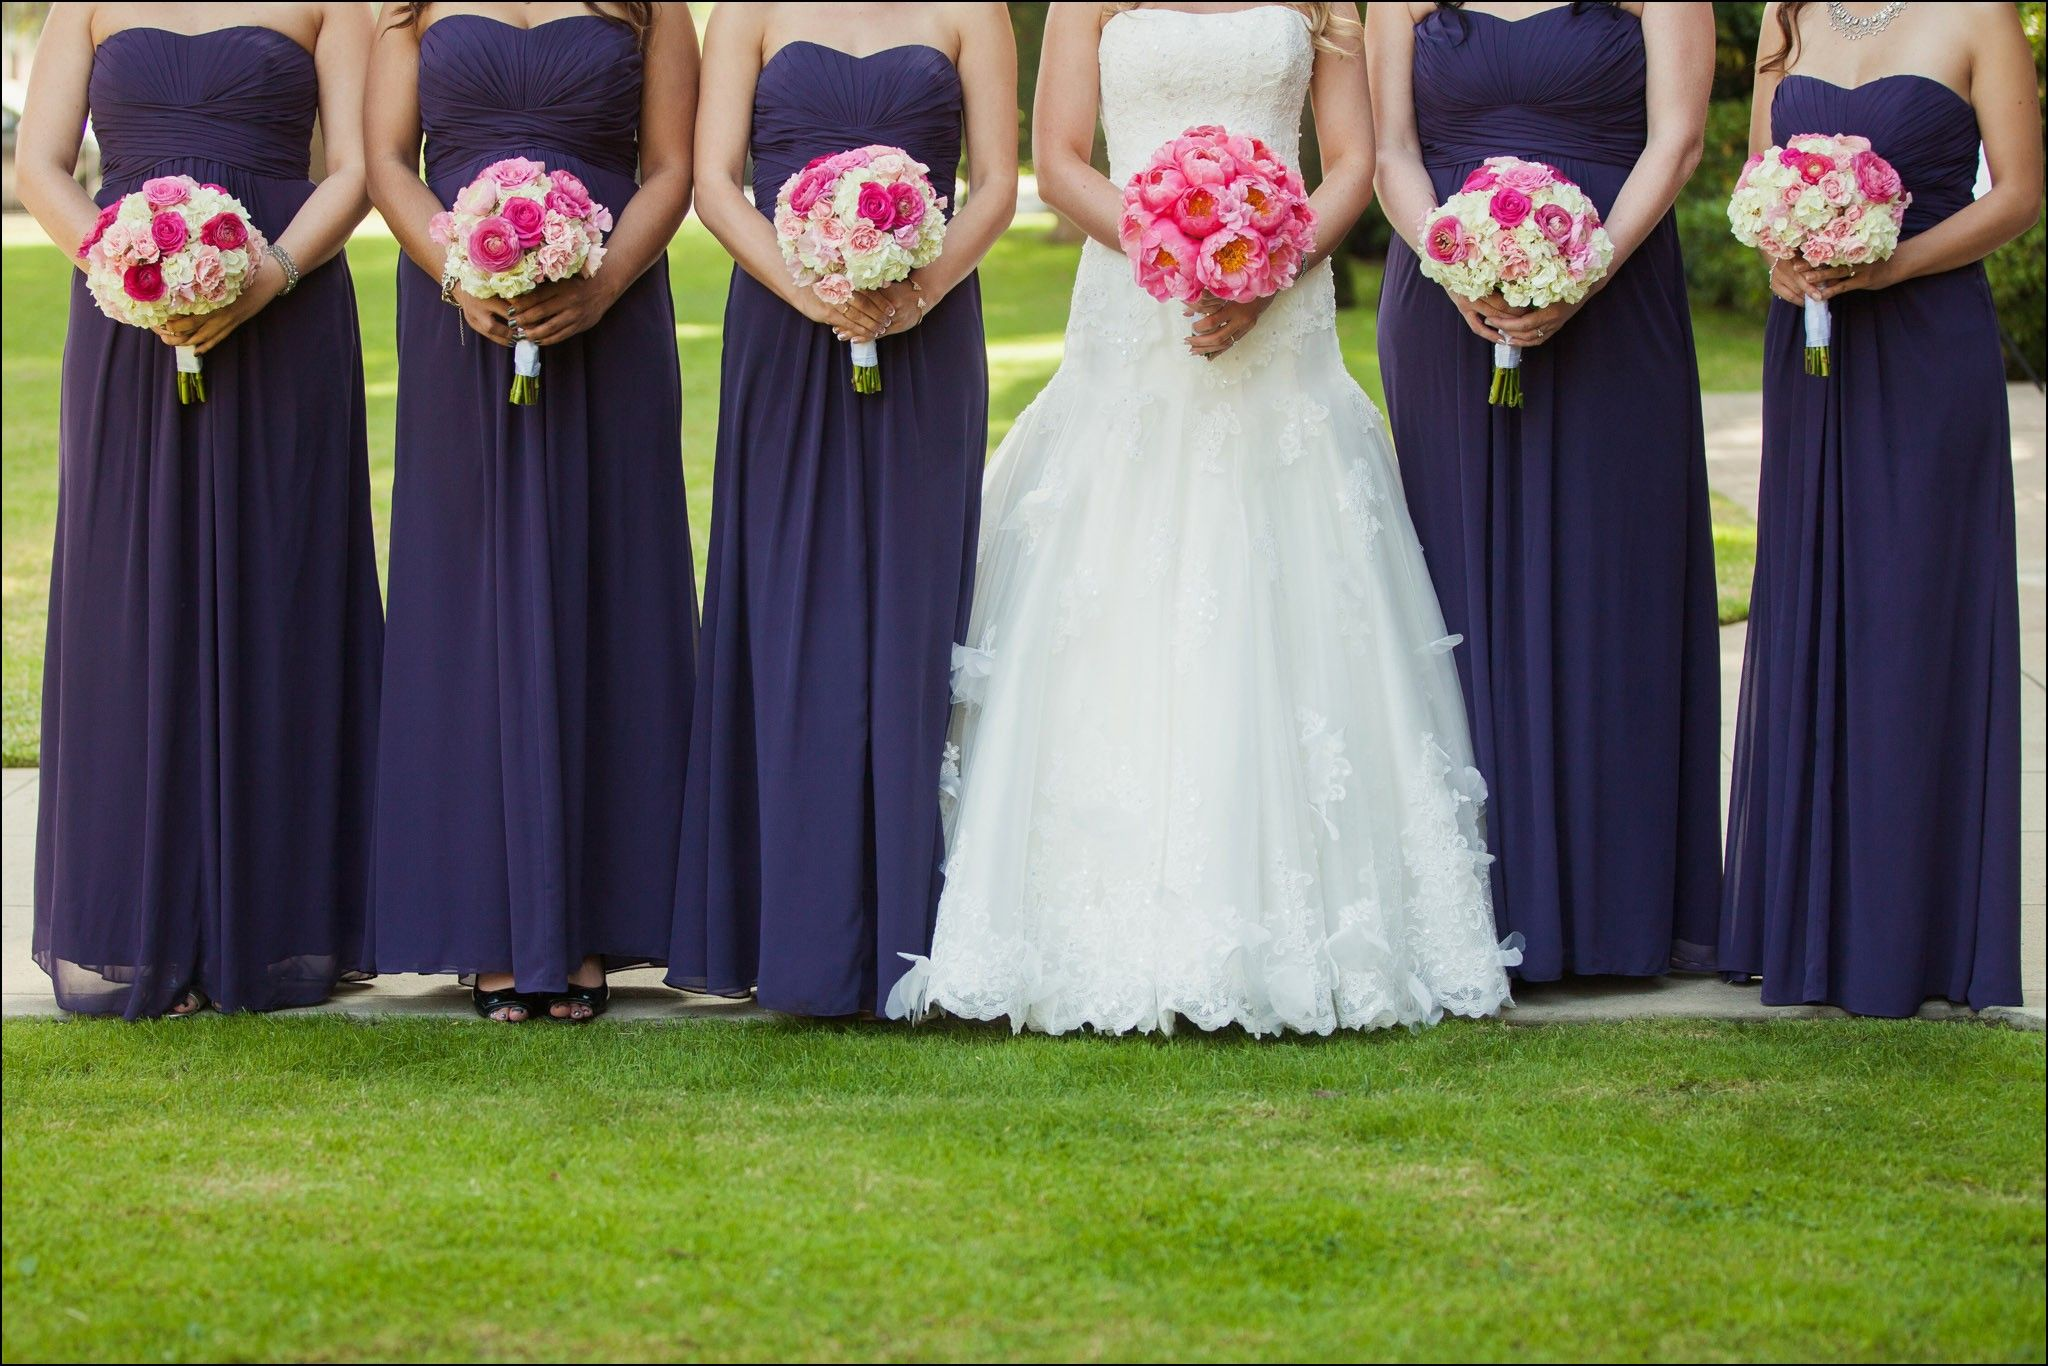 Orange county bridesmaid dresses dresses and gowns ideas orange county bridesmaid dresses ombrellifo Choice Image